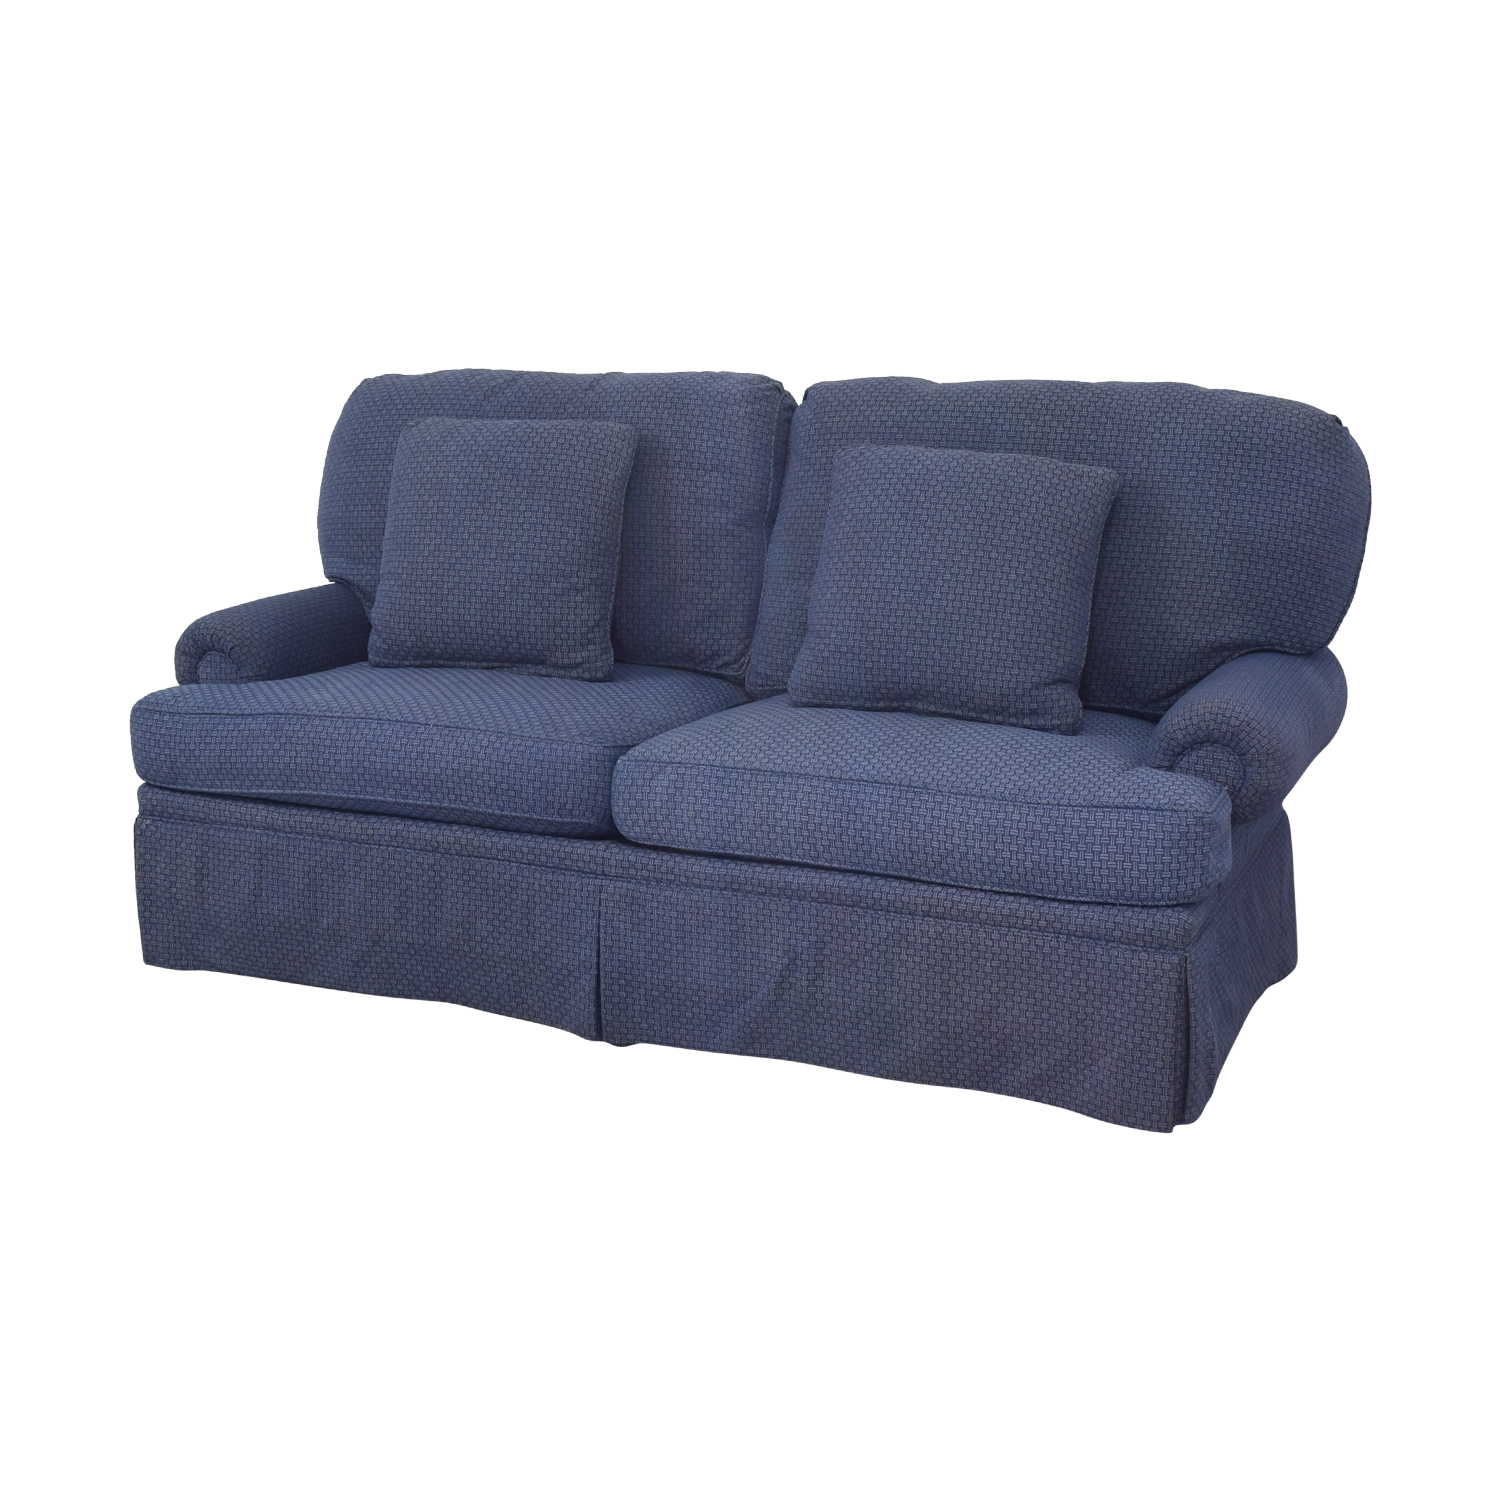 Calico Calico Classic Home Recessed Panel Arm Blue Down-Filled Sofa second hand